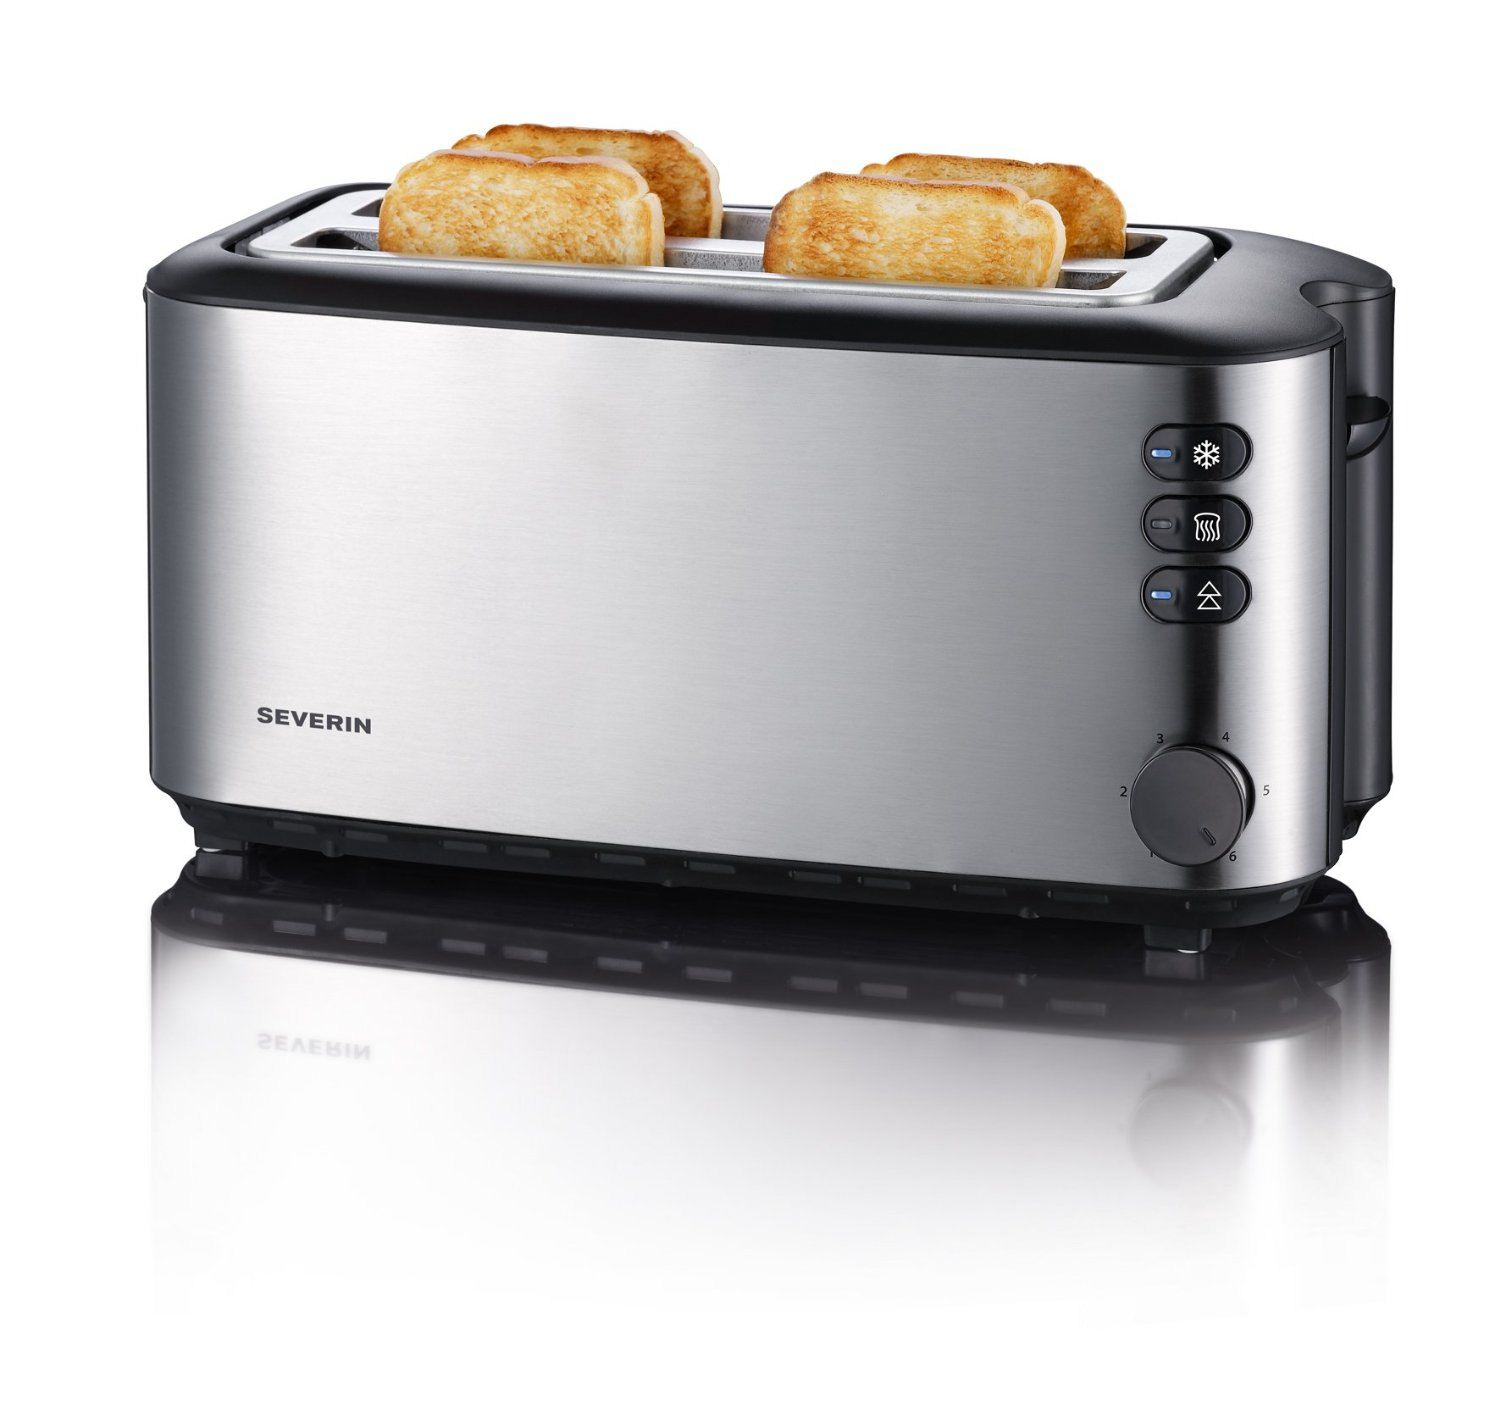 severin automatic long slot toaster 4 slice 1400w brushed stainless steel at2509 ebay. Black Bedroom Furniture Sets. Home Design Ideas